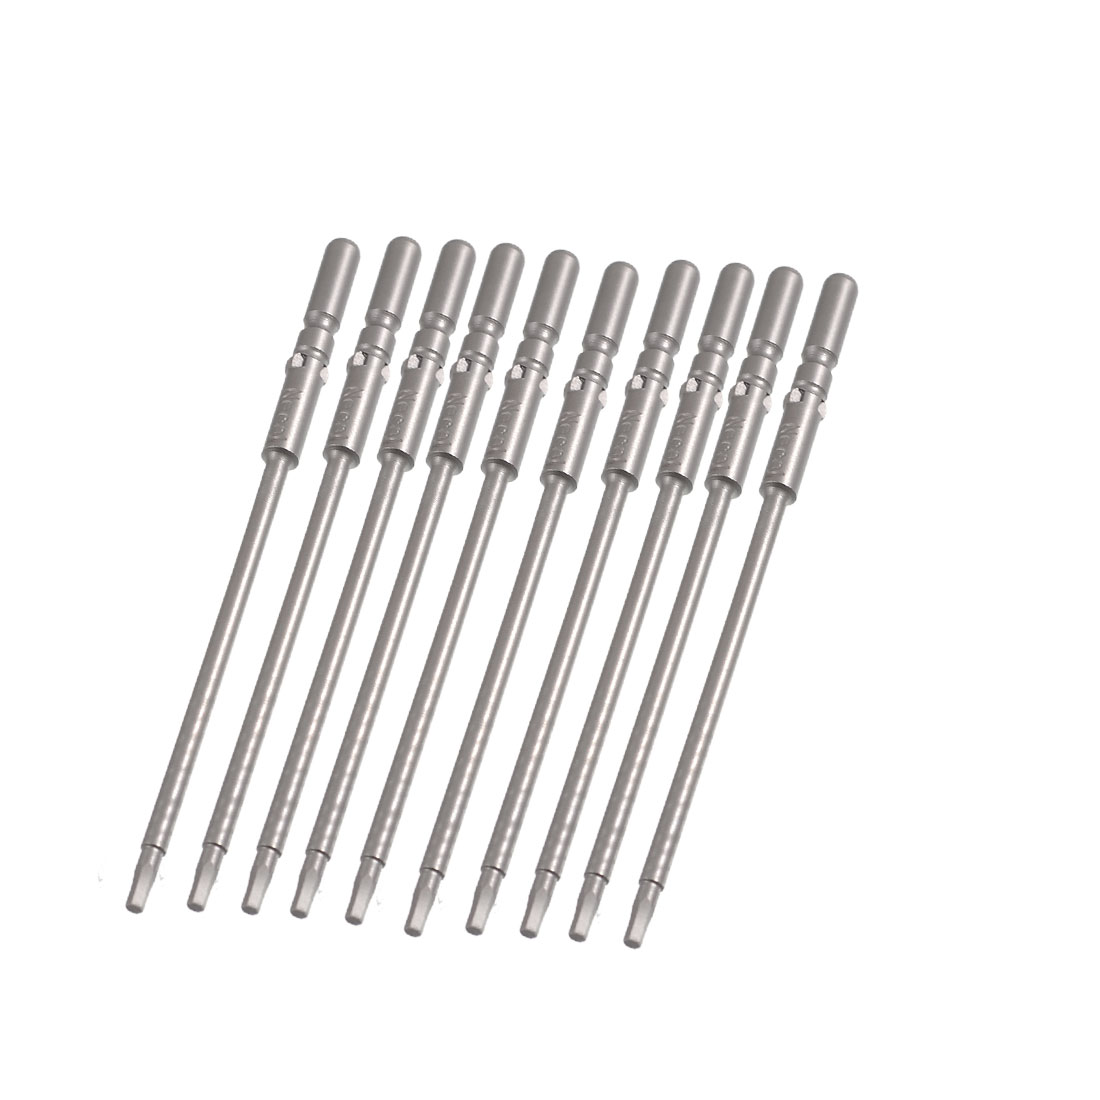 10 Pcs Round Shank 100mm Long 2mm Hexagon Tip Hex Head Screwdriver Bits